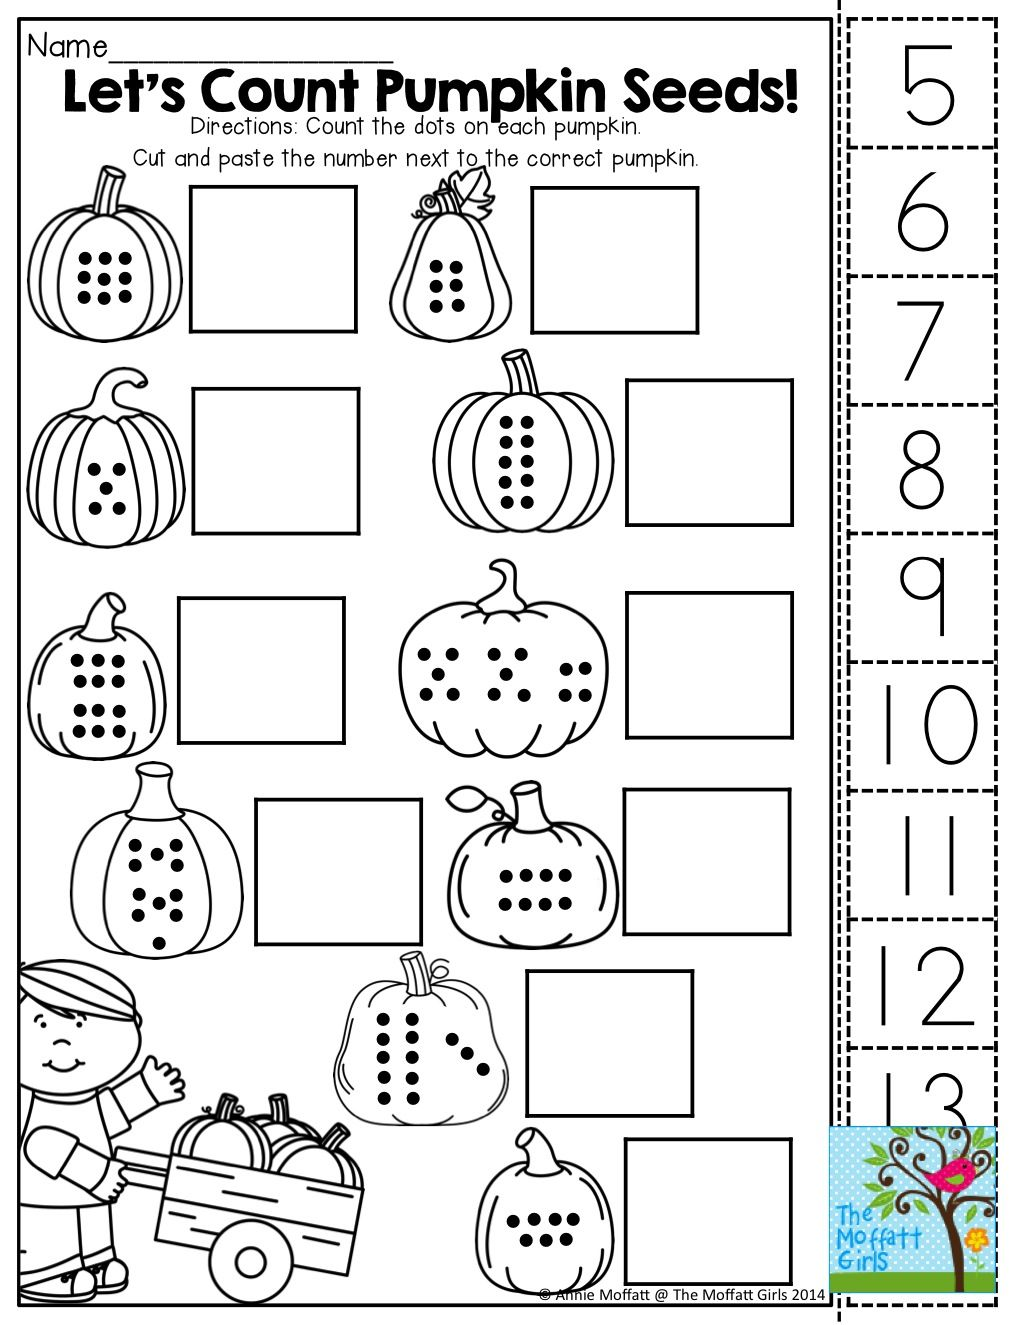 October Fun Filled Learning Resources Fun Worksheets For Kids